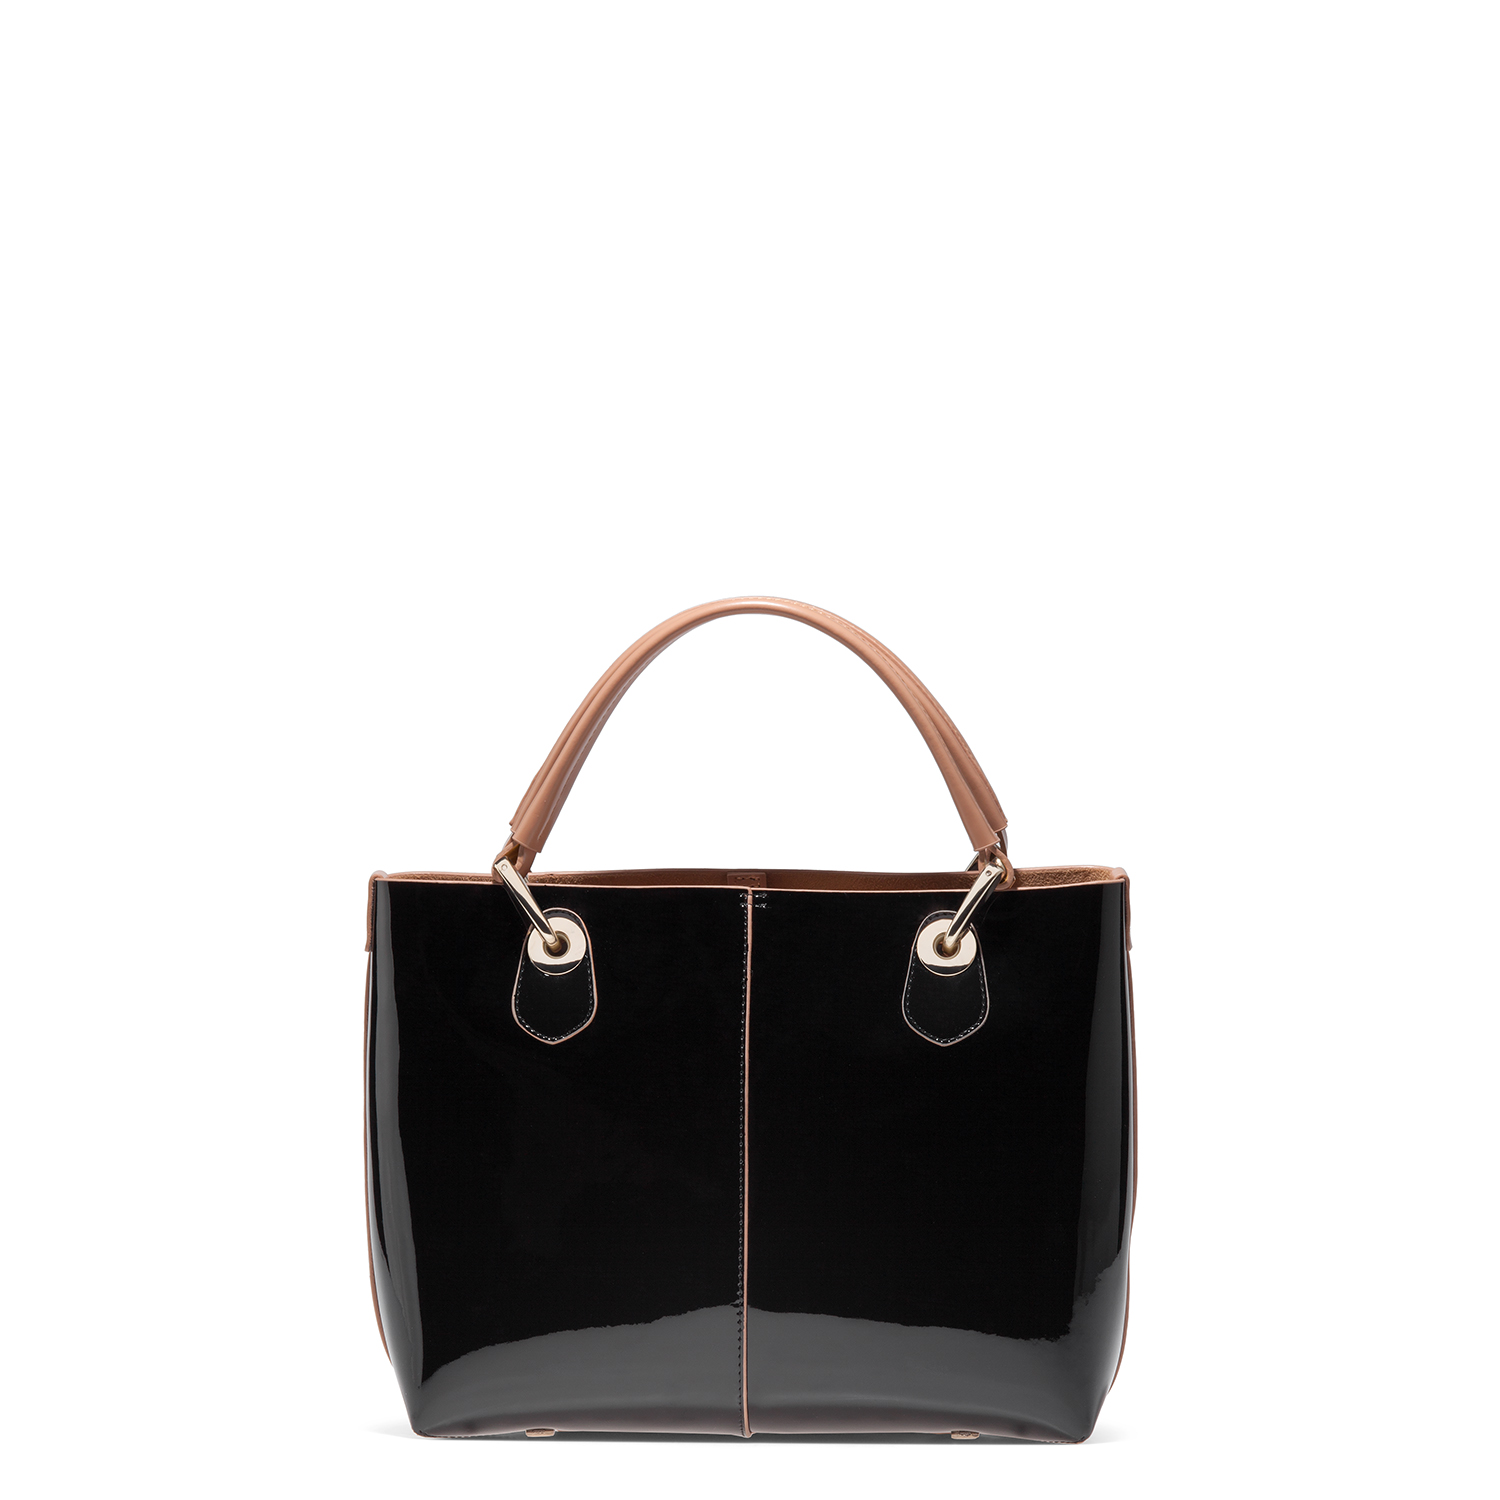 Women's bag CARLO PAZOLINI PS-N2635-20R1